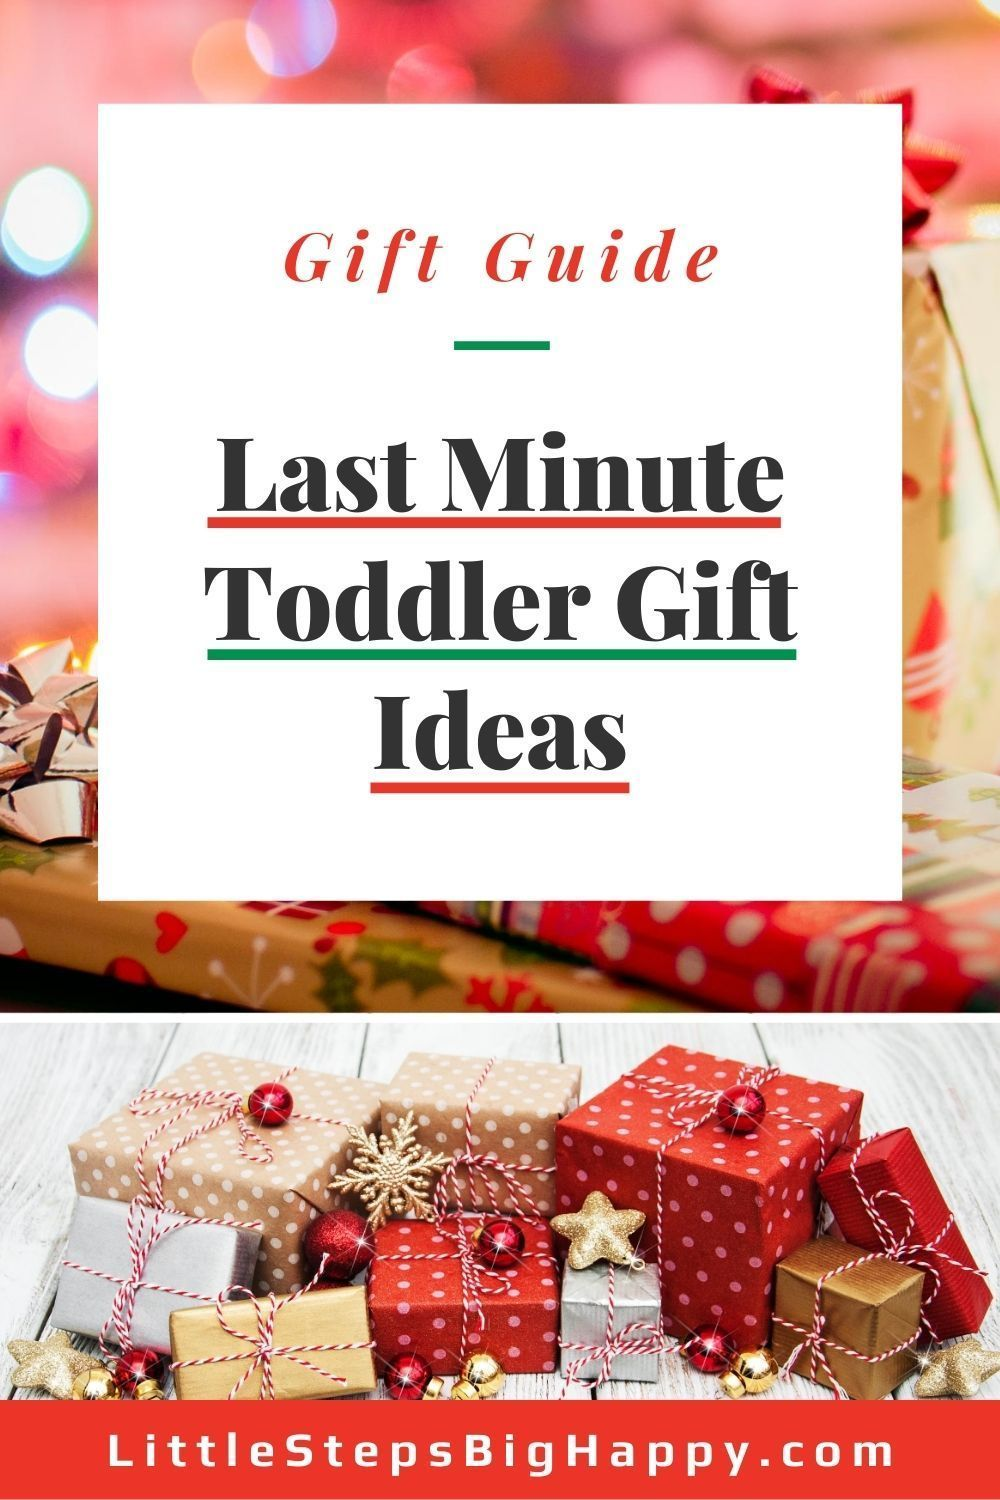 Christmas Wish List 2 Year Old Boy 2020 Christmas Wish List for a 2 Year Old Boy | Amazon Gift Guide in